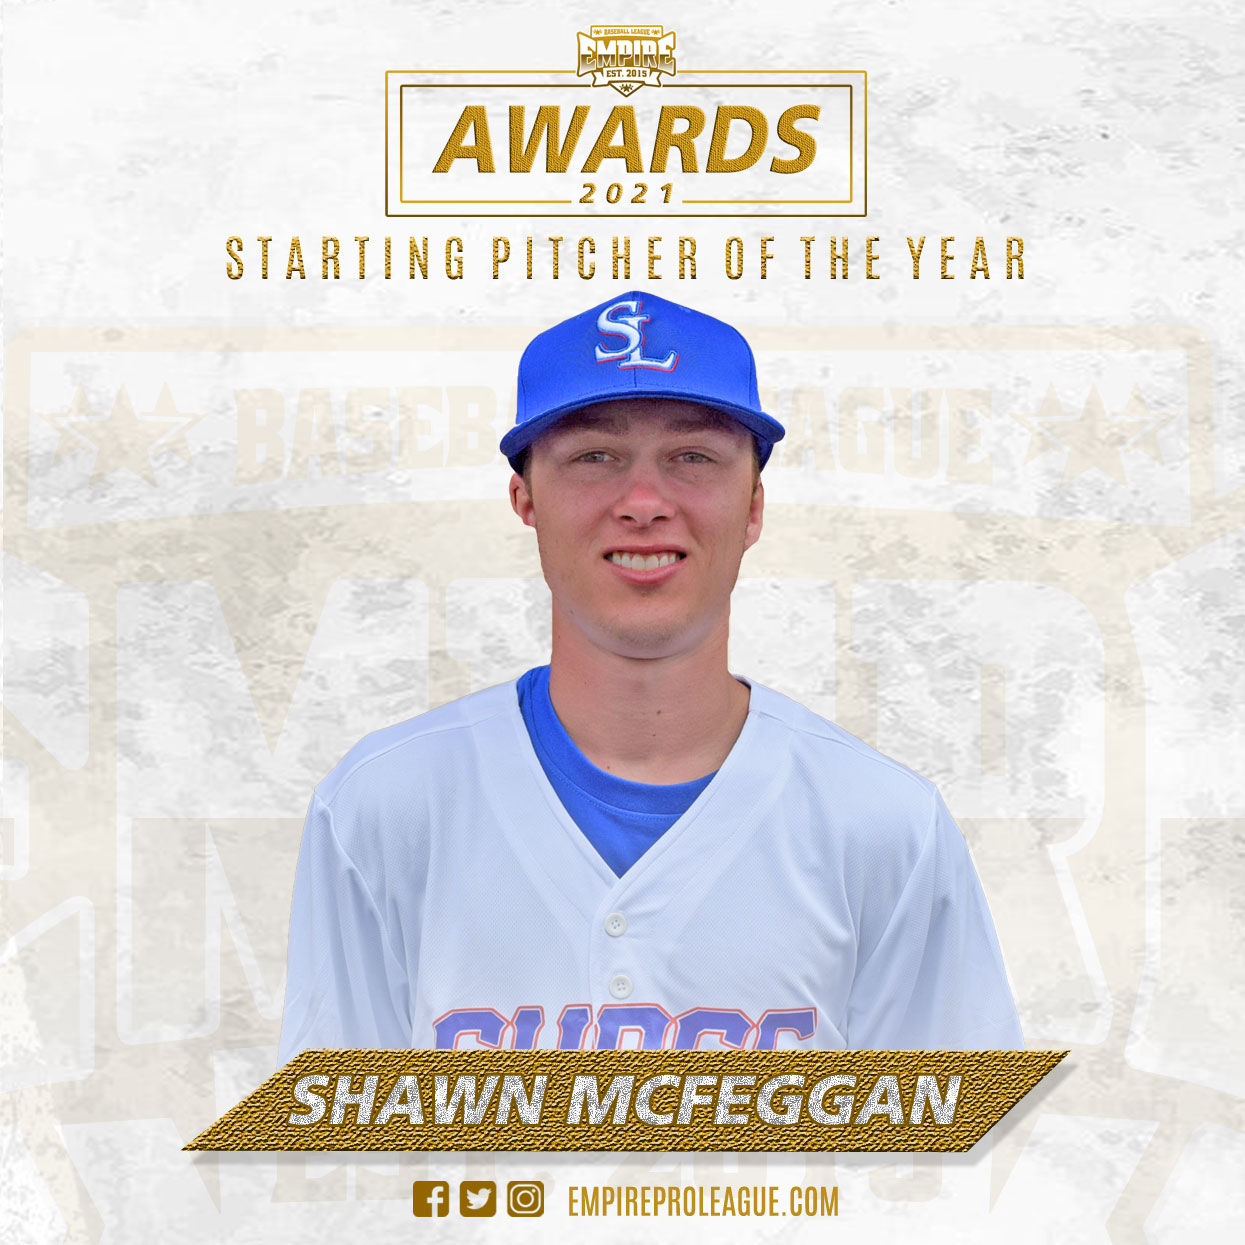 Awards-Starter-of-the-Year